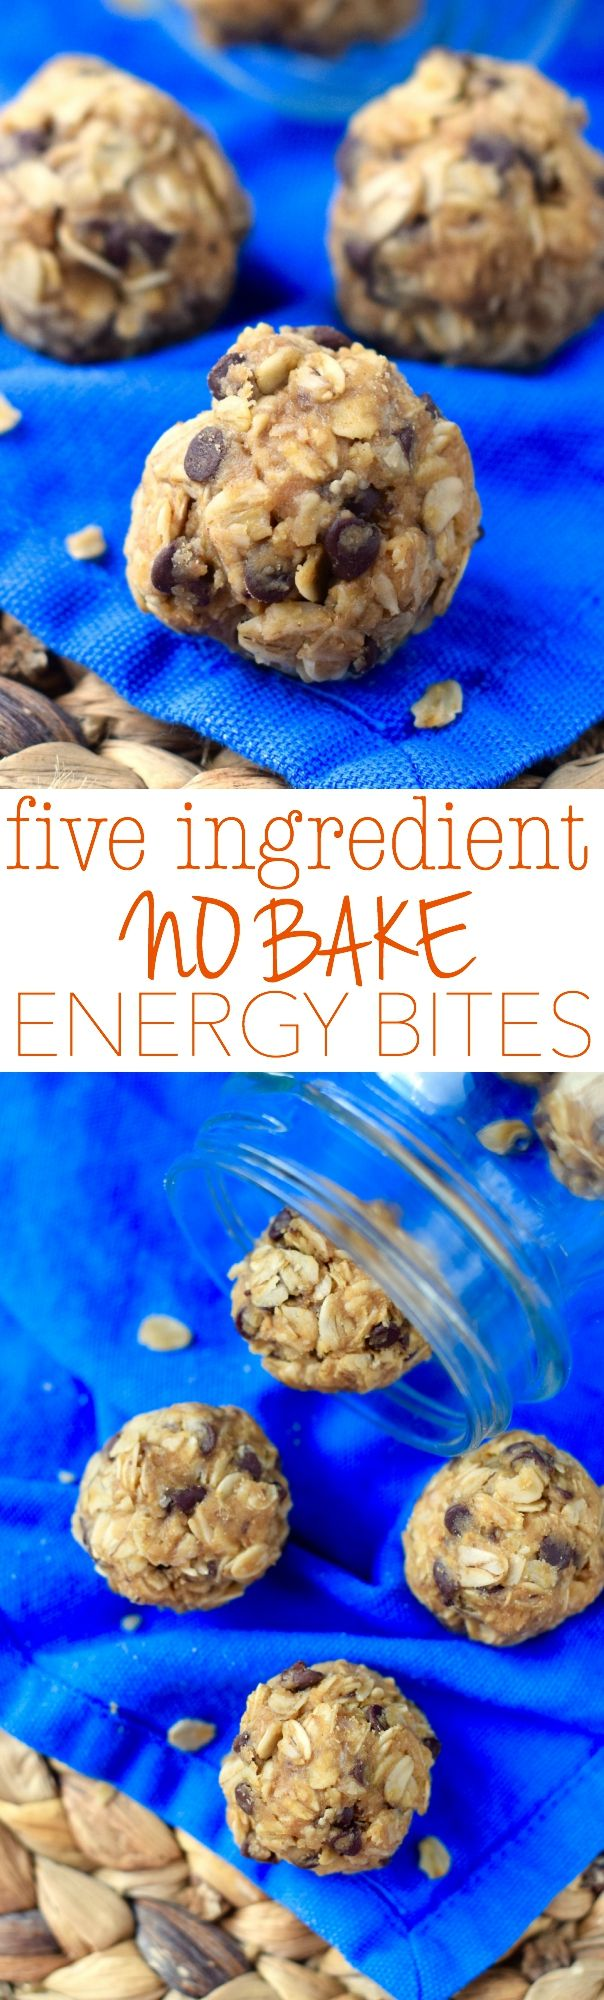 These Five Ingredient No Bake Energy Bites are easy to throw together and make such a perfect snack! (Vegan Easy Energy Bites)